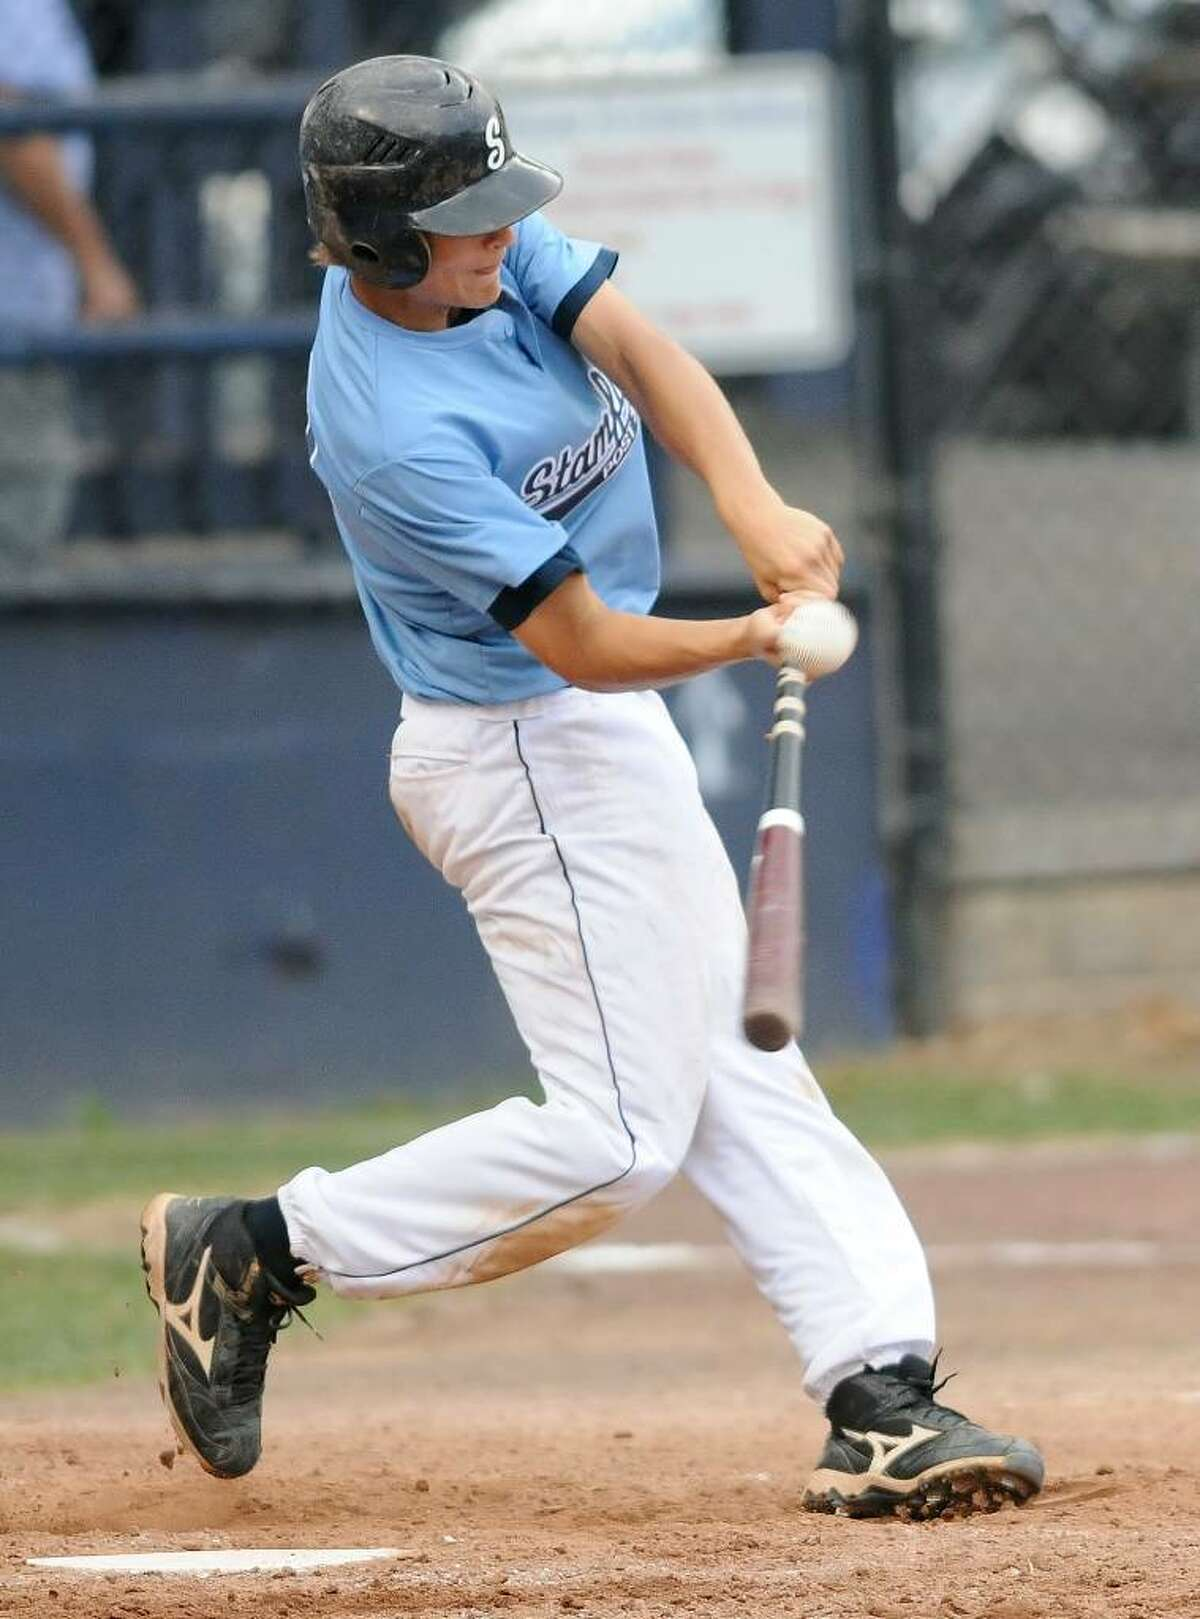 Stamford's Ryan Curto connects during an American Legion state tournament game at Cubeta Stadium in Stamford on Wednesday, July 21, 2010. Stamford faced off against Simsbury.